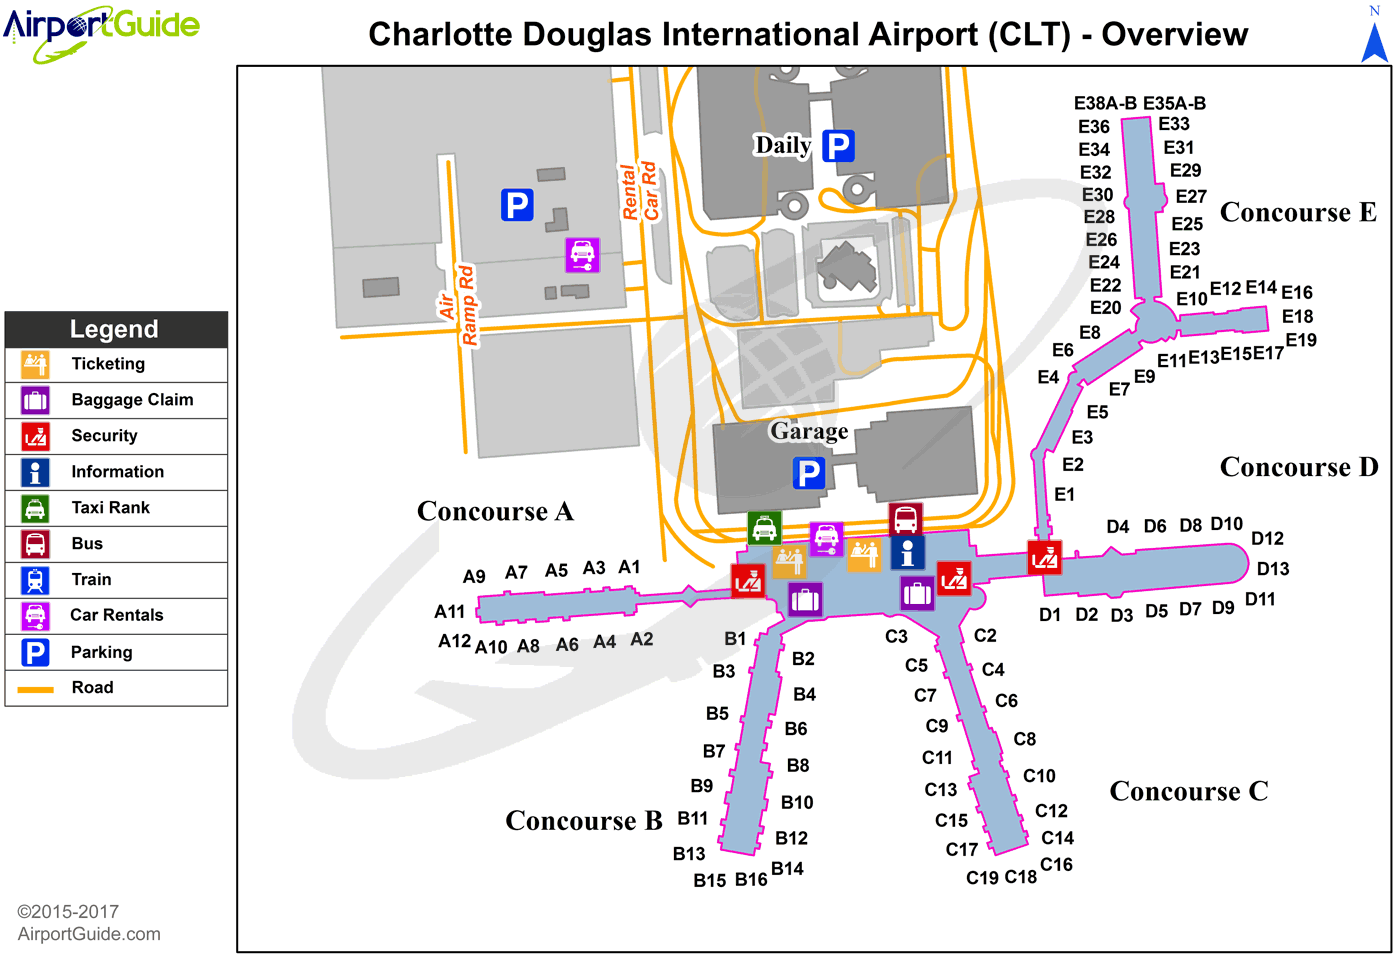 douglas international airport map Pin On Airport Terminal Maps Airportguide Com douglas international airport map